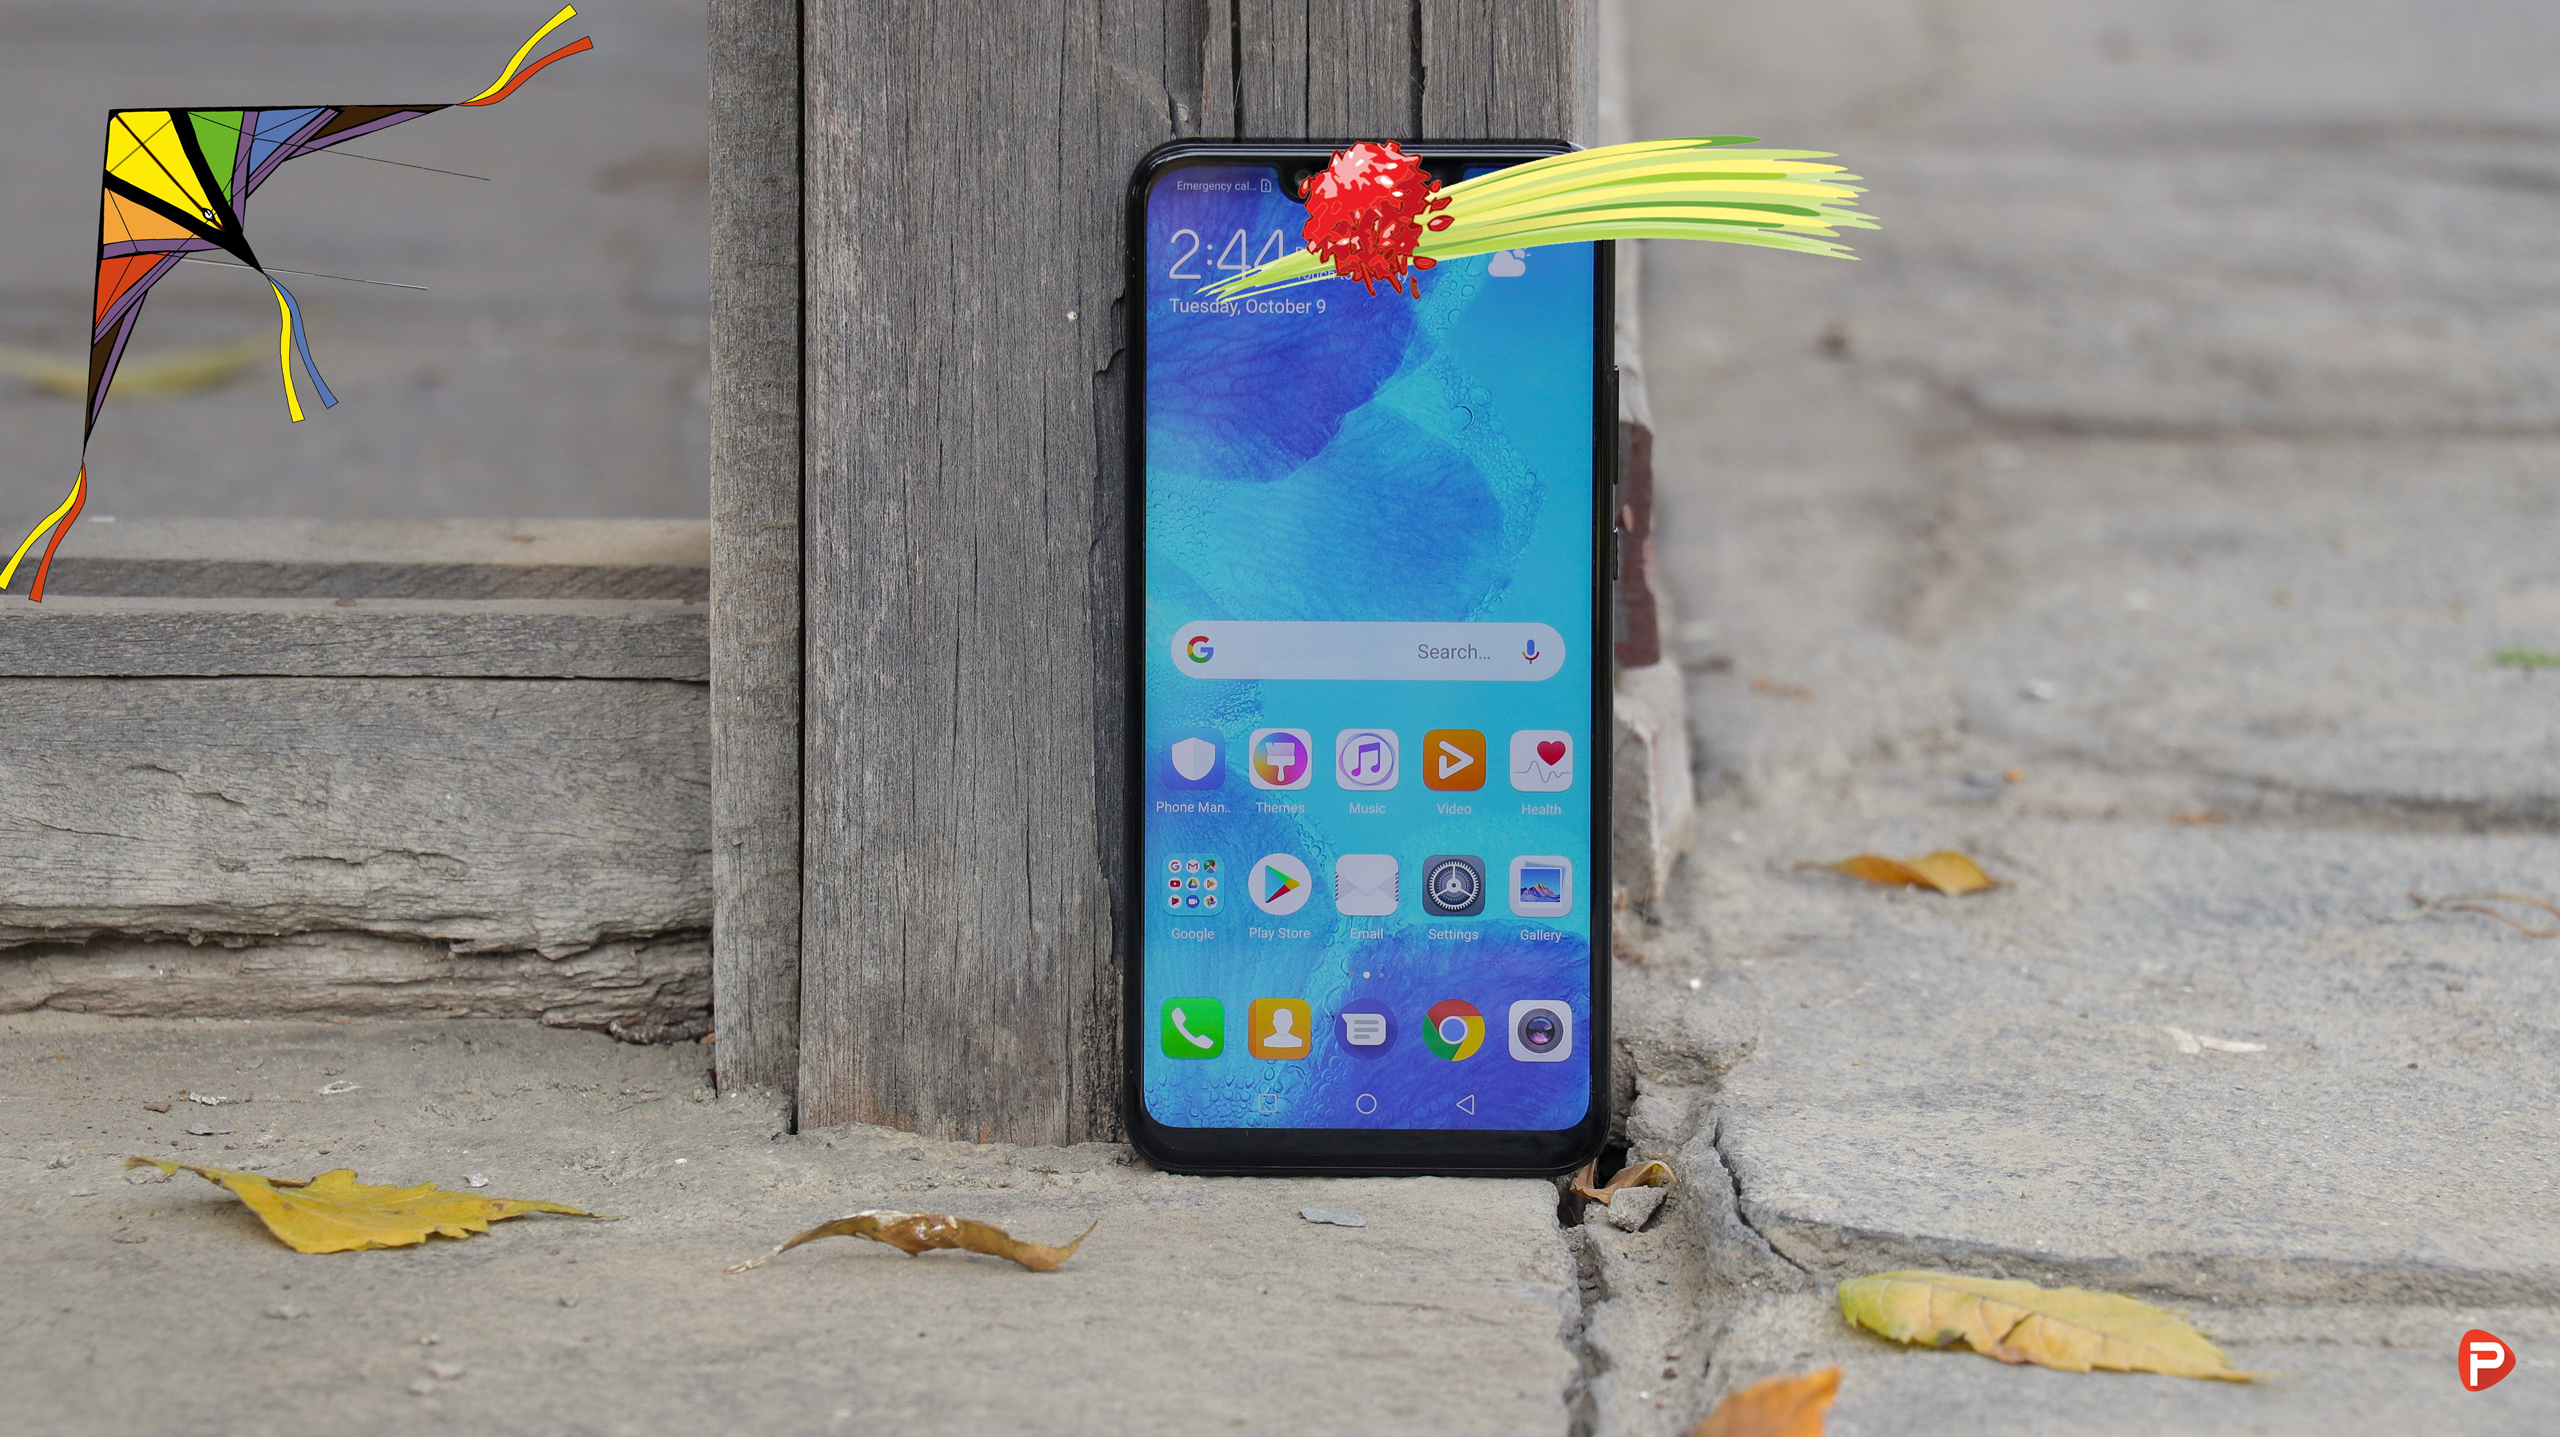 Huawei Mobile Dashain offer in Nepal